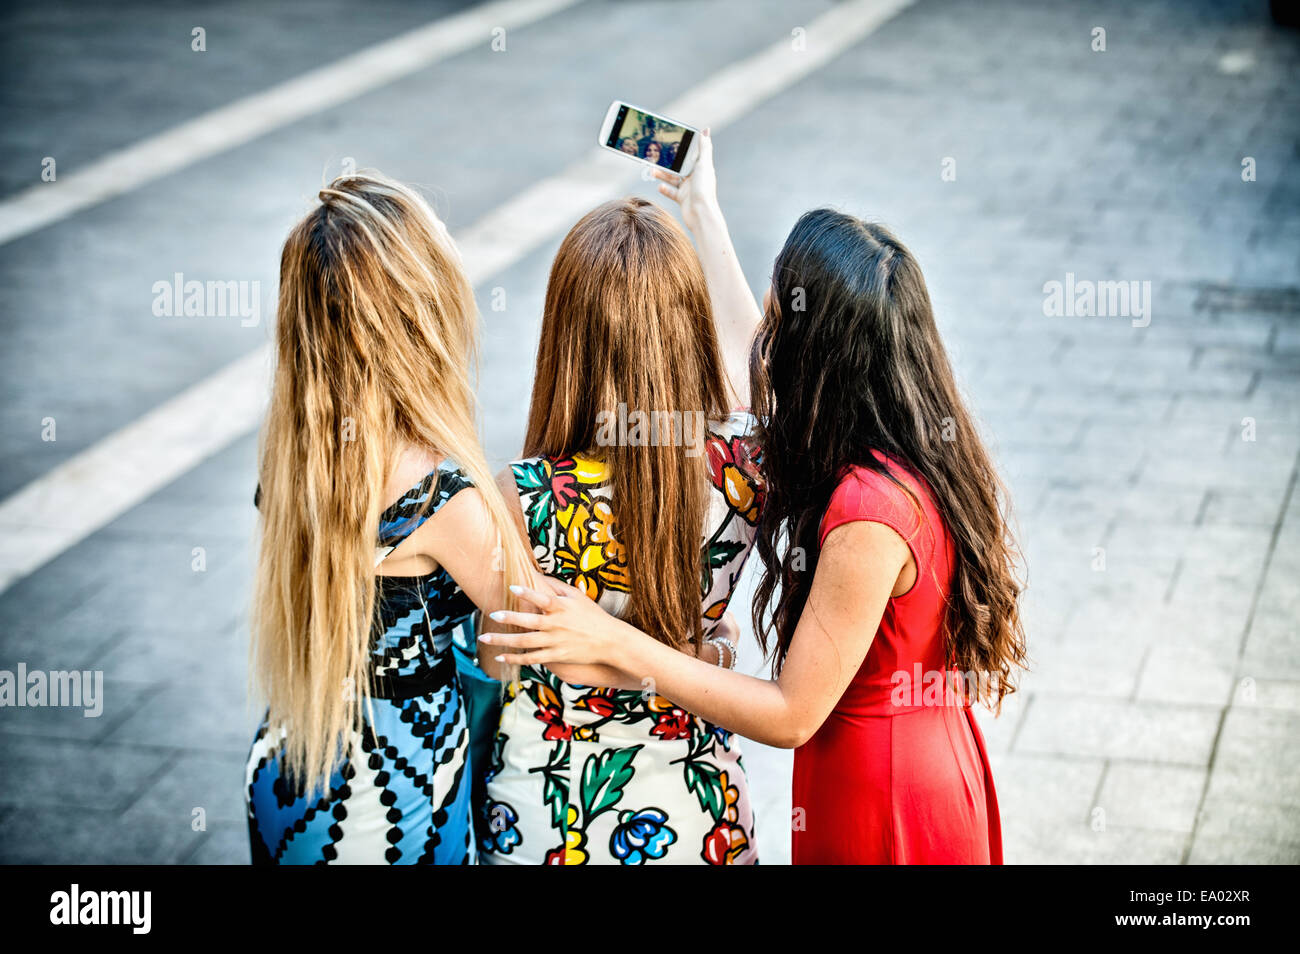 Rear view of three young women taking selfie with smartphone, Cagliari, Sardinia, Italy - Stock Image